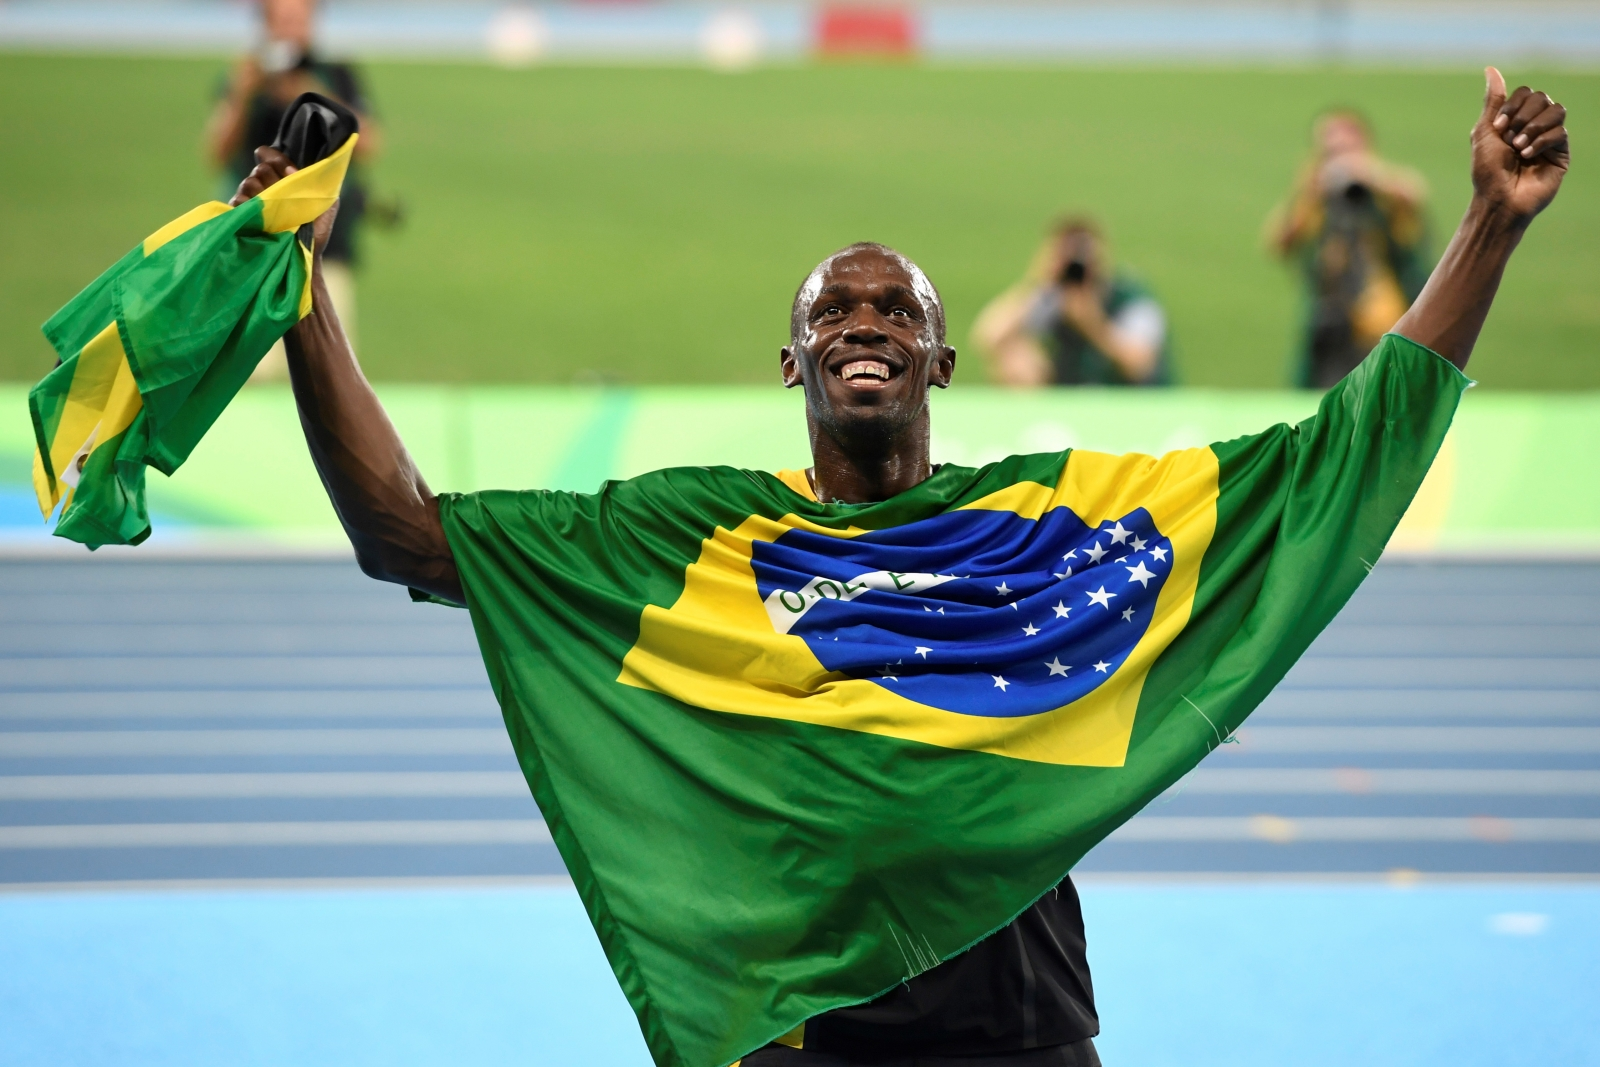 Rio Olympics 2016: Quotes from Usain Bolt, Michael Phelps ...